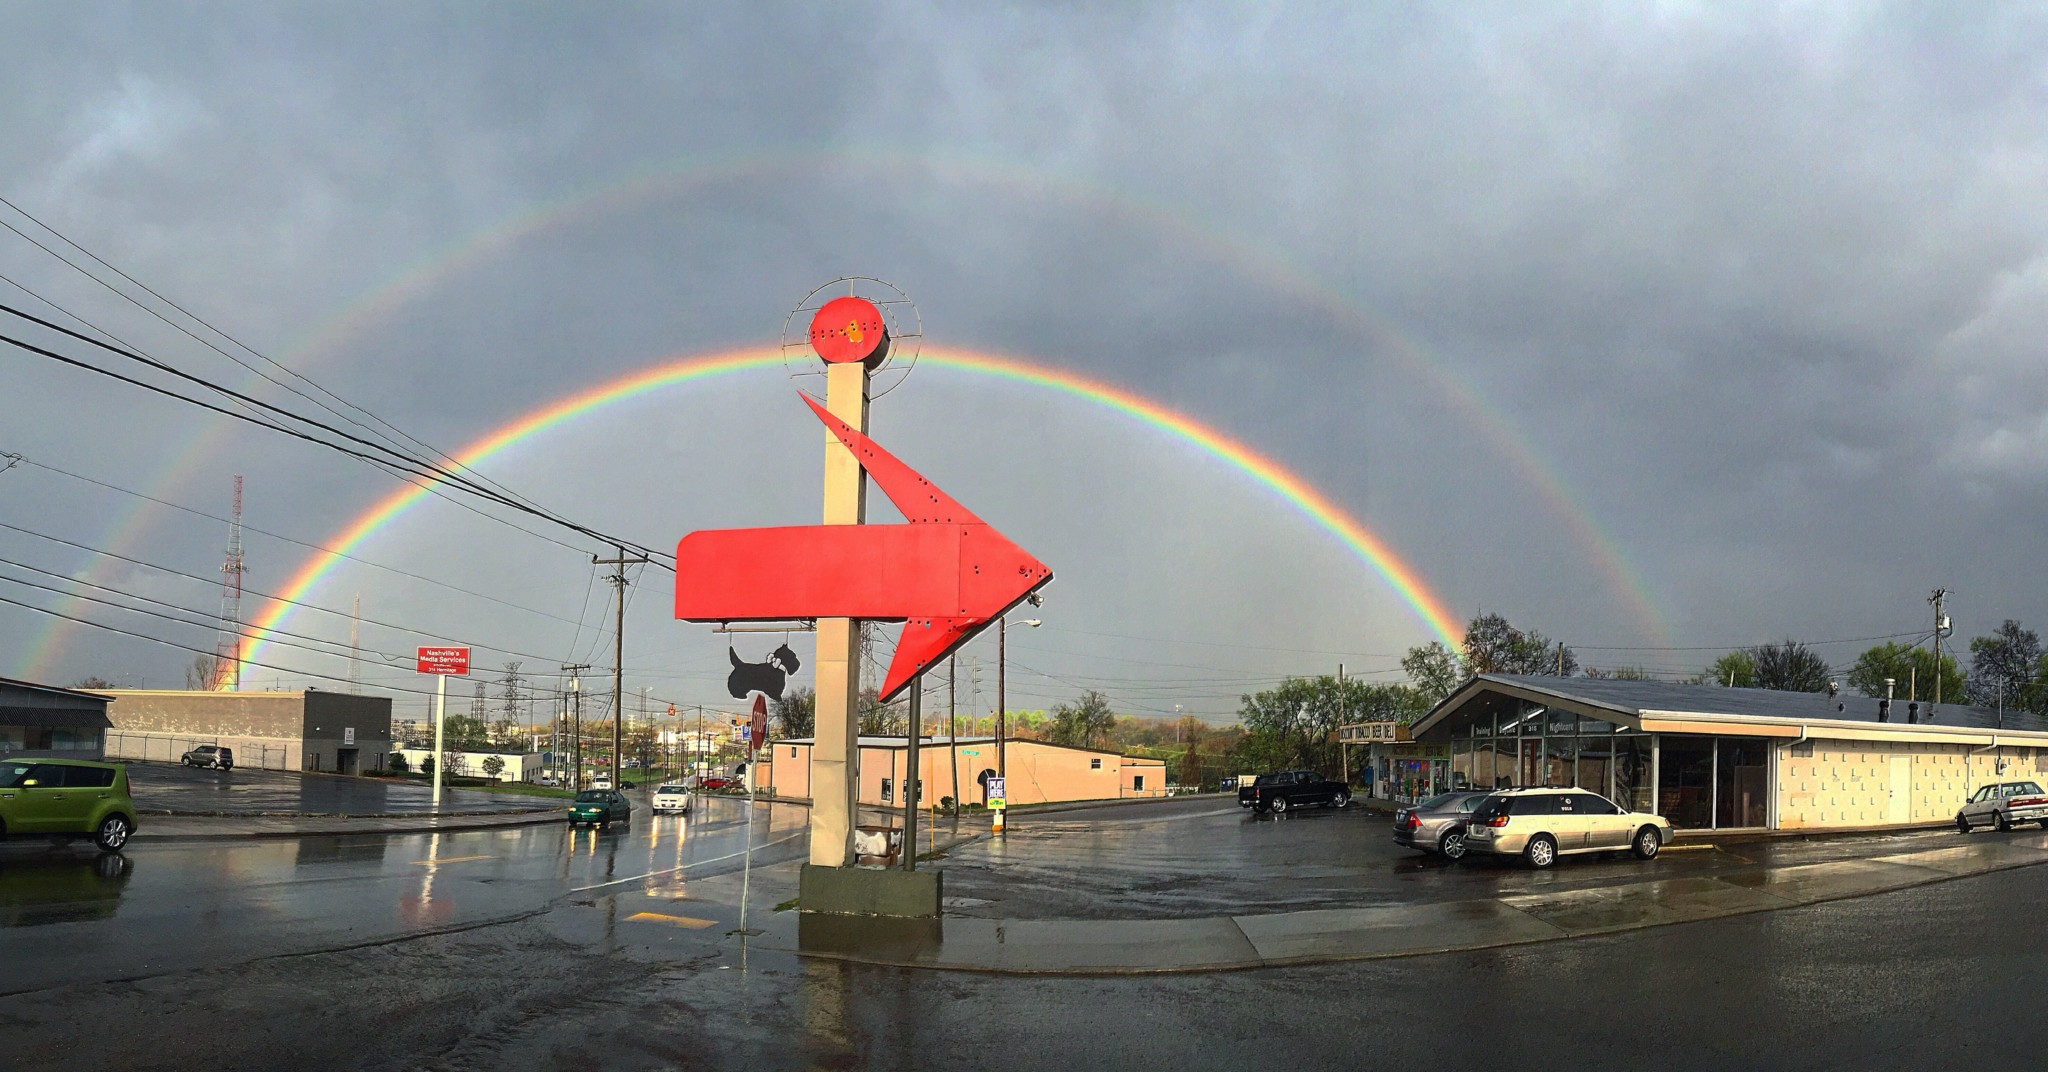 Double Rainbow over large red vintage arrow sign pointing to Red Rover Pet Services Dog Daycare and Boarding